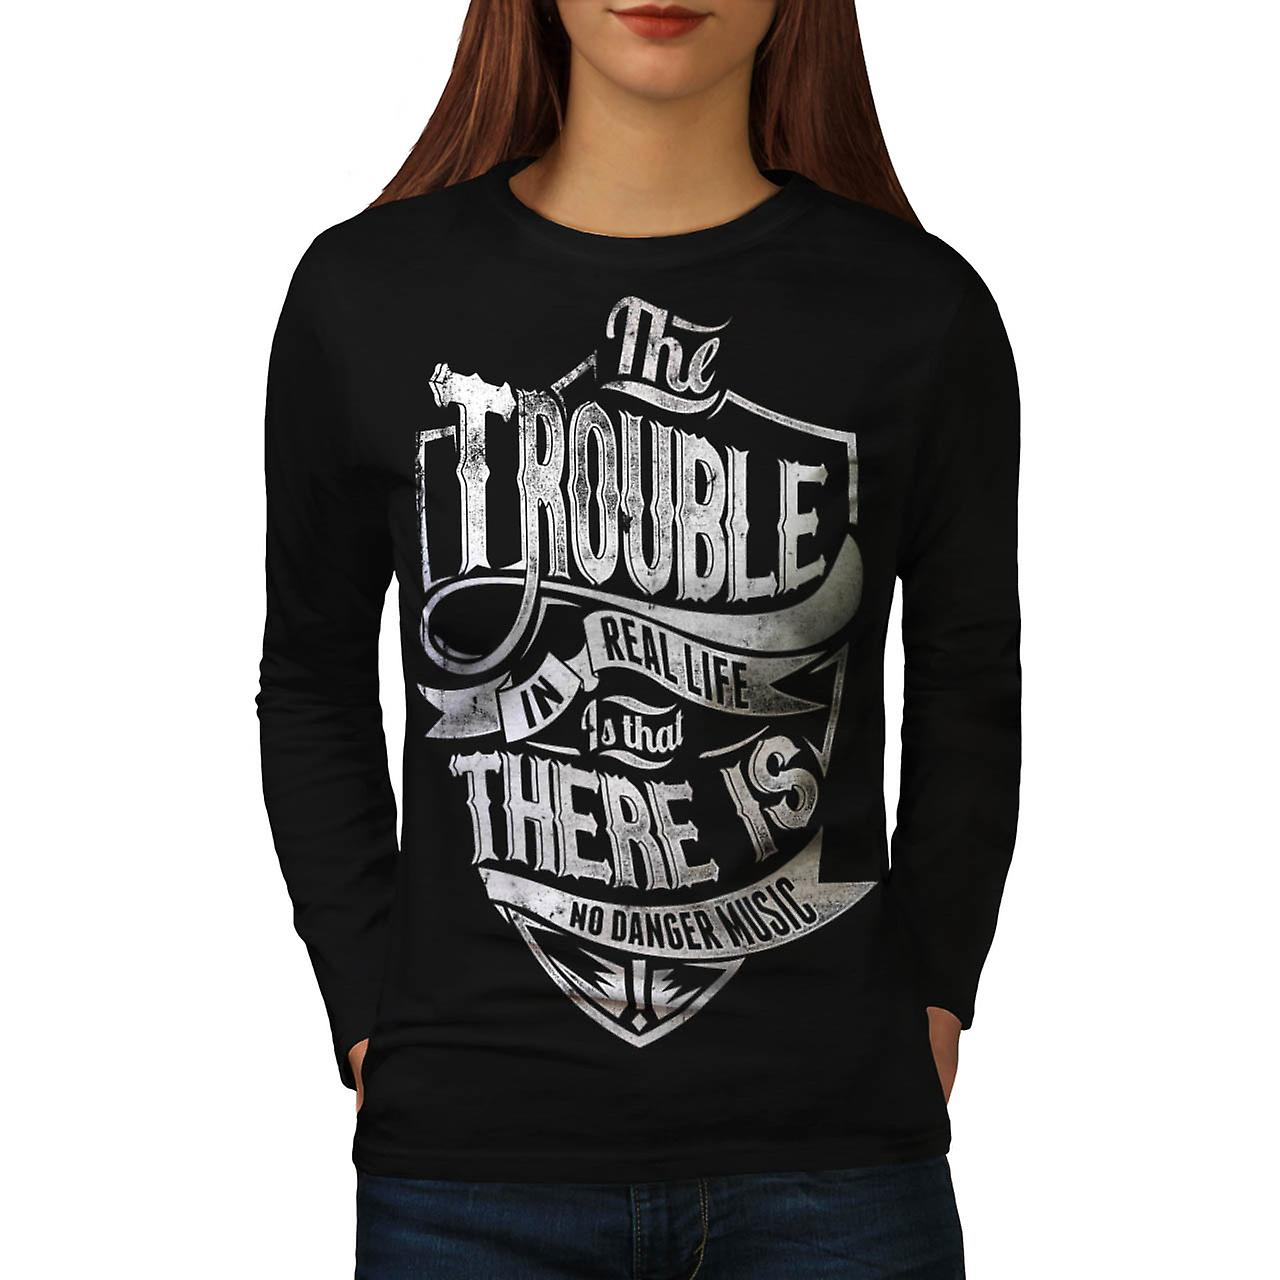 Real Life Danger Tune Music Beat Women Black Long Sleeve T-shirt | Wellcoda